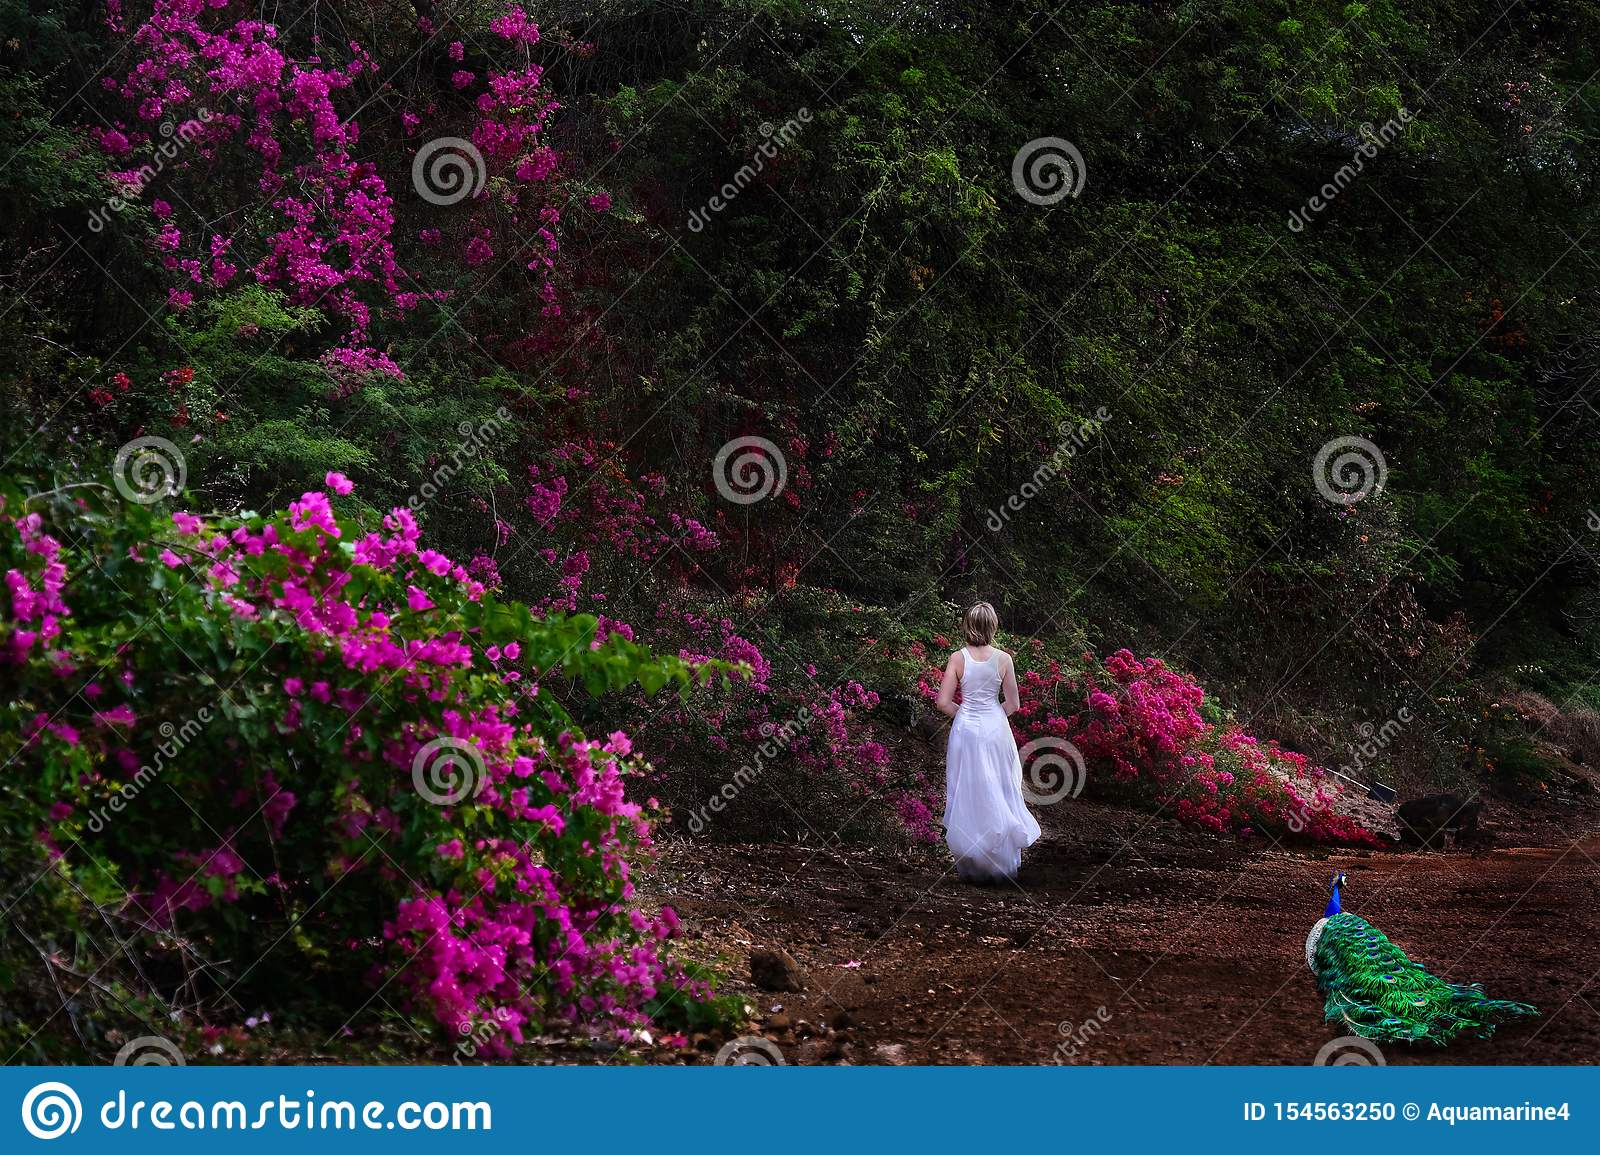 Vacation on Hawaii. Woman walking in botanical garden with pink flowers and a peacock.